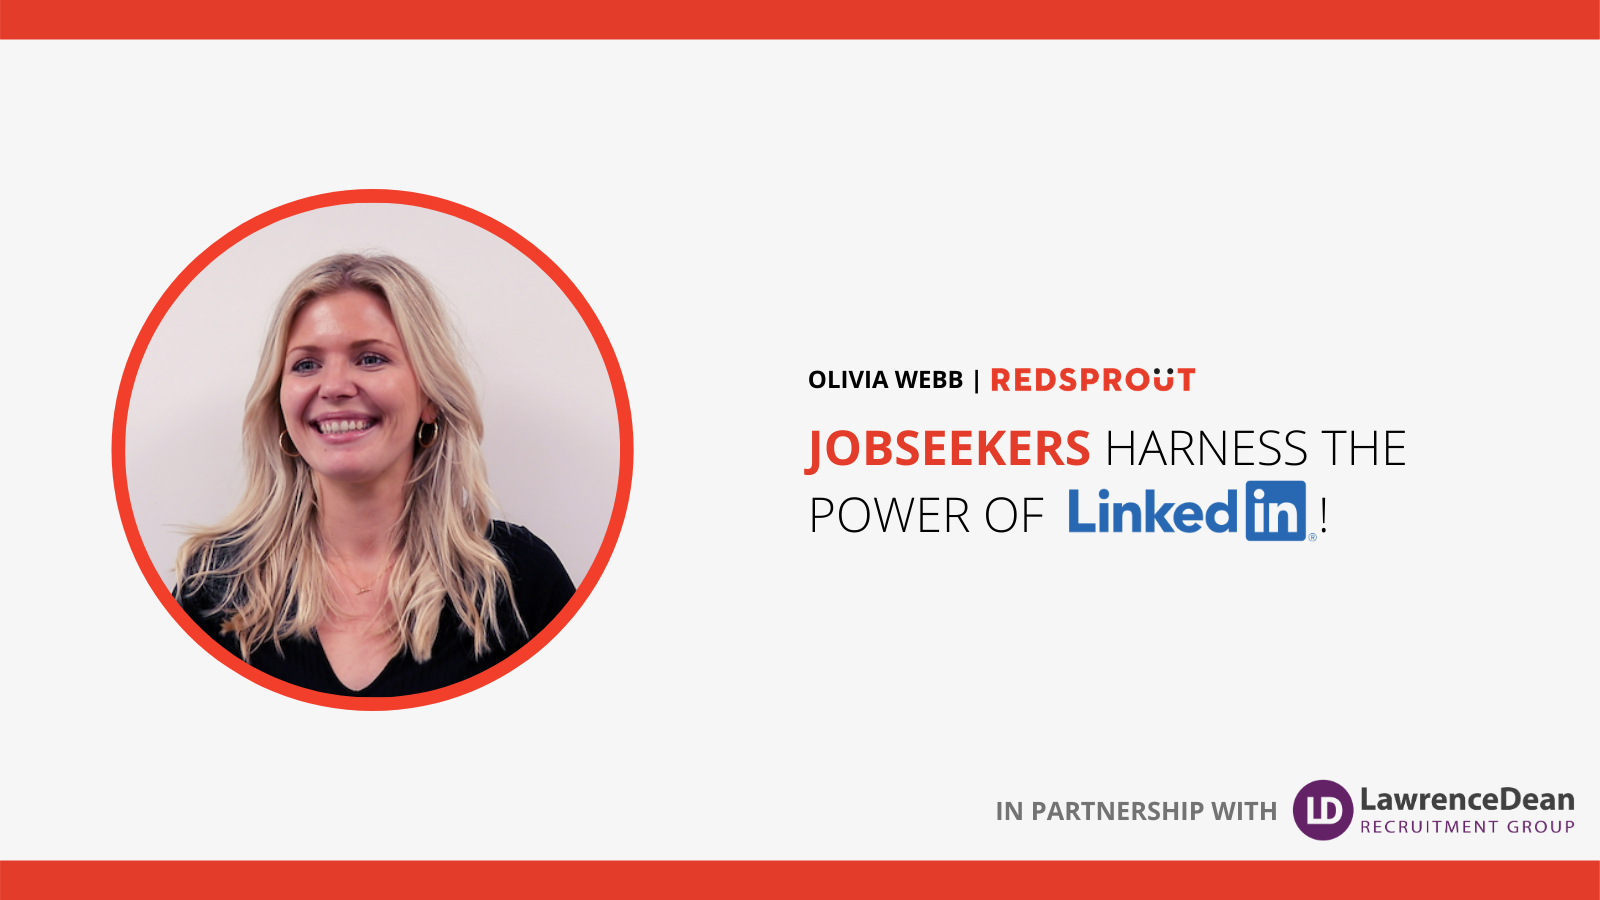 Webinar: Jobseekers - Harness the Power of LinkedIn!